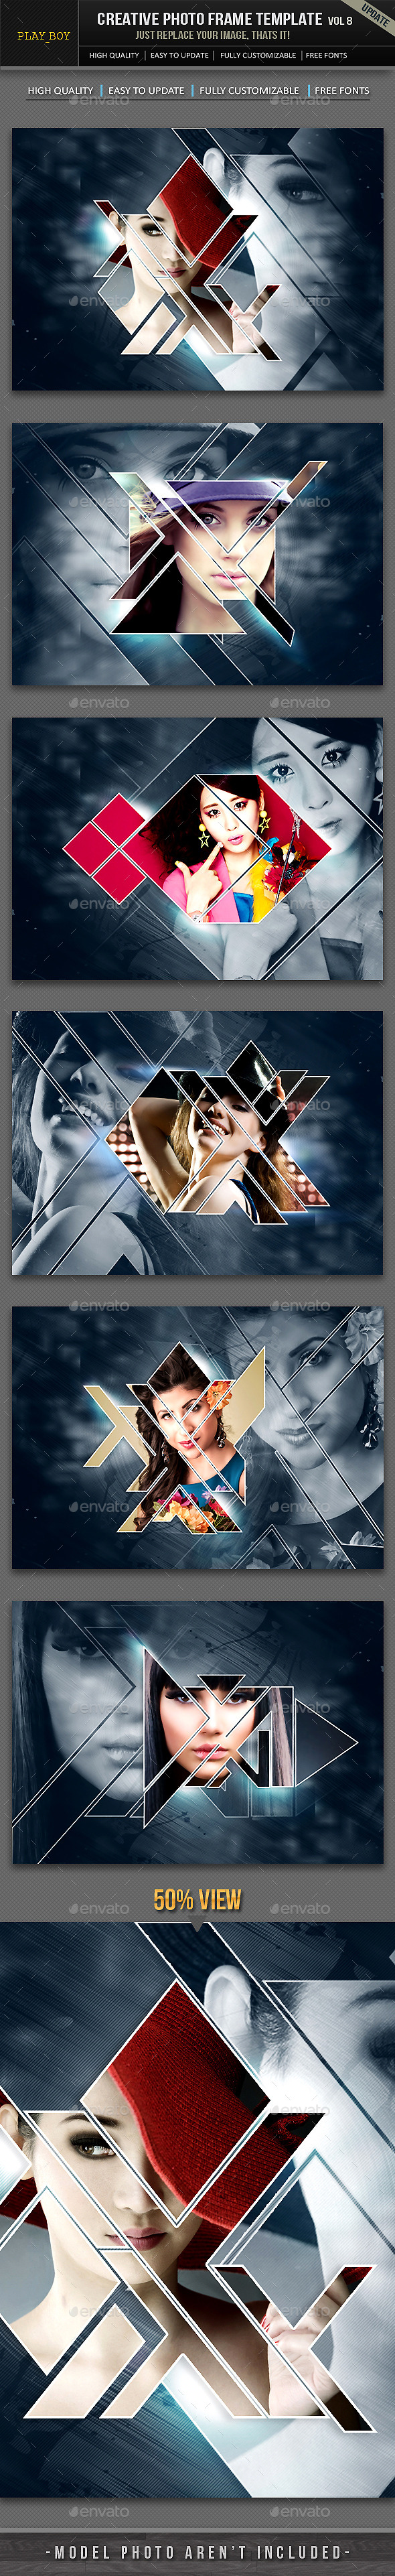 GraphicRiver Creative Photo Frame Template 11467324